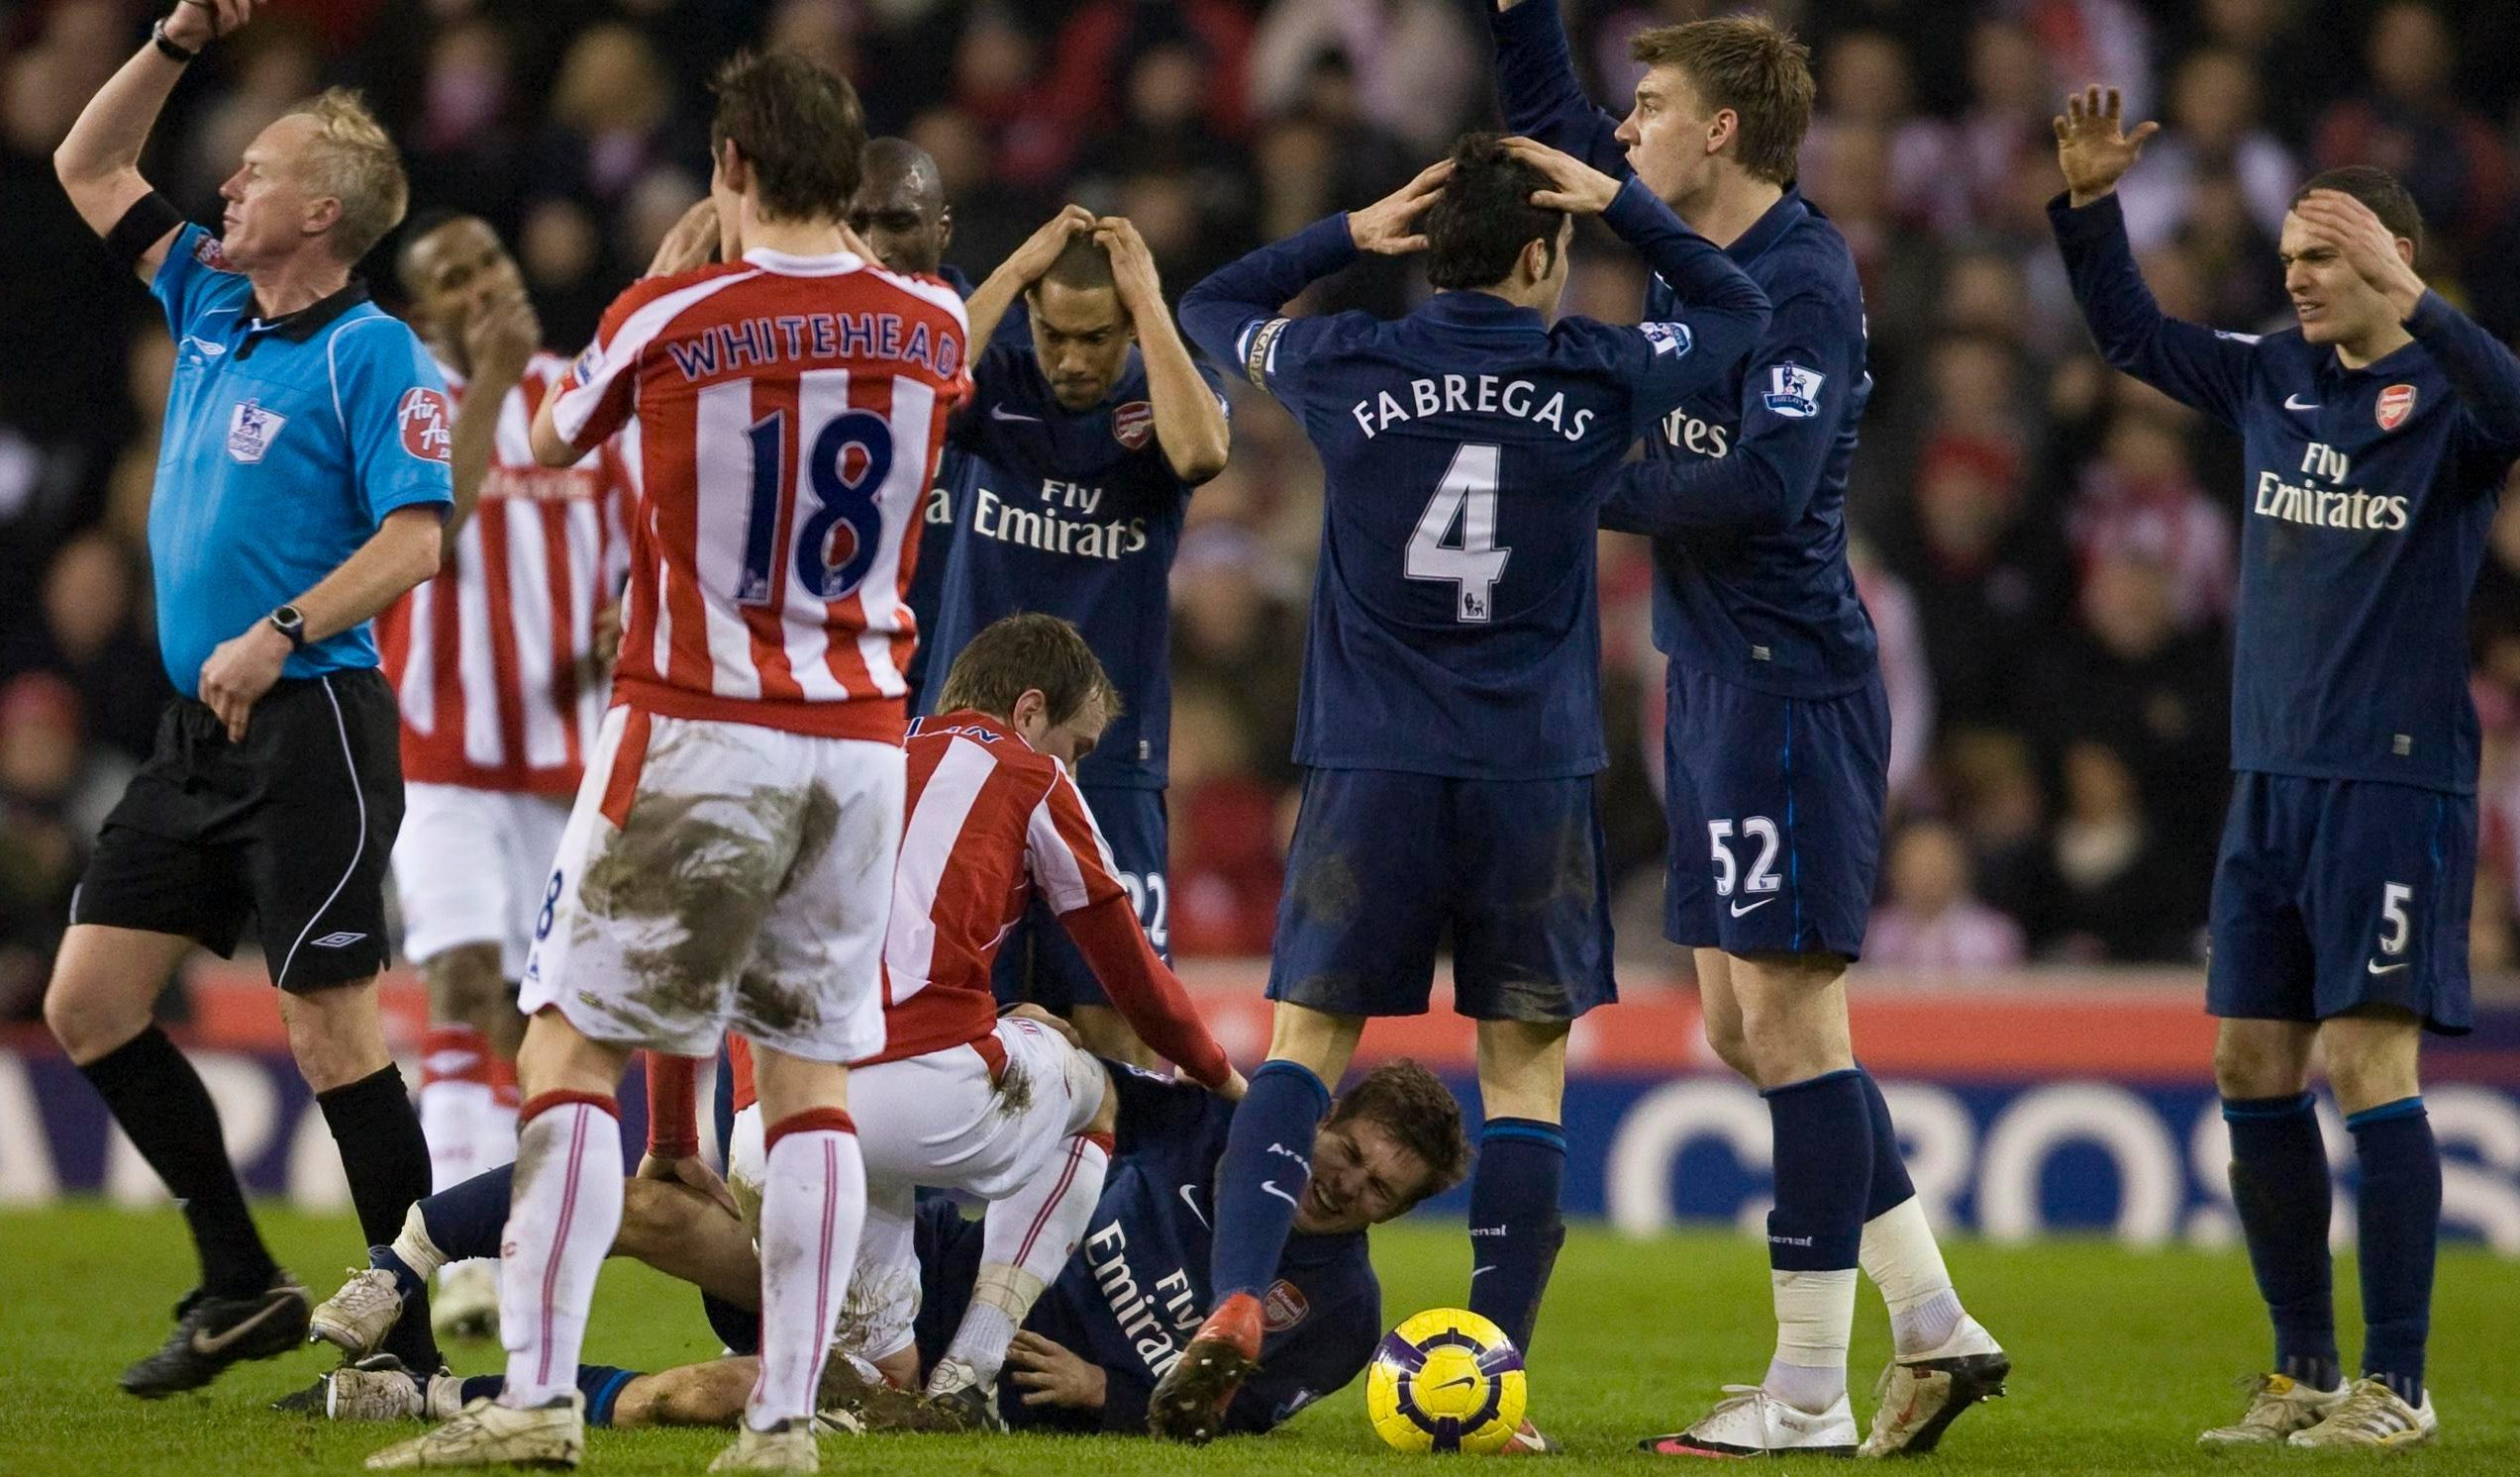 Aaron Ramsey's leg break at Stoke vs Arsenal was no surprise… Tony Pulis hated Arsene Wenger and we were totally out of control